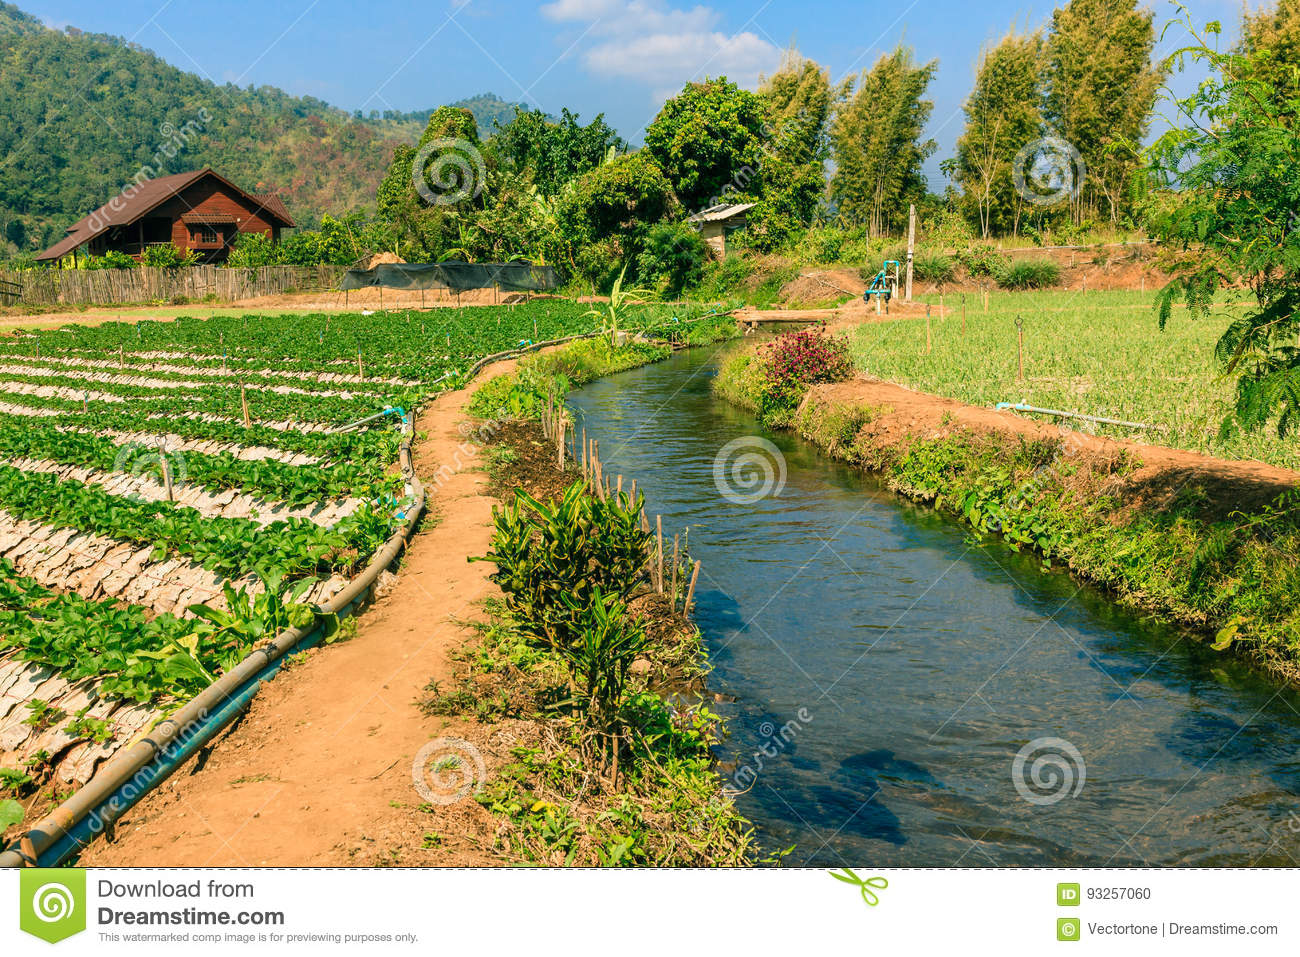 Agriculture field of mix organic farm and irrigation system.